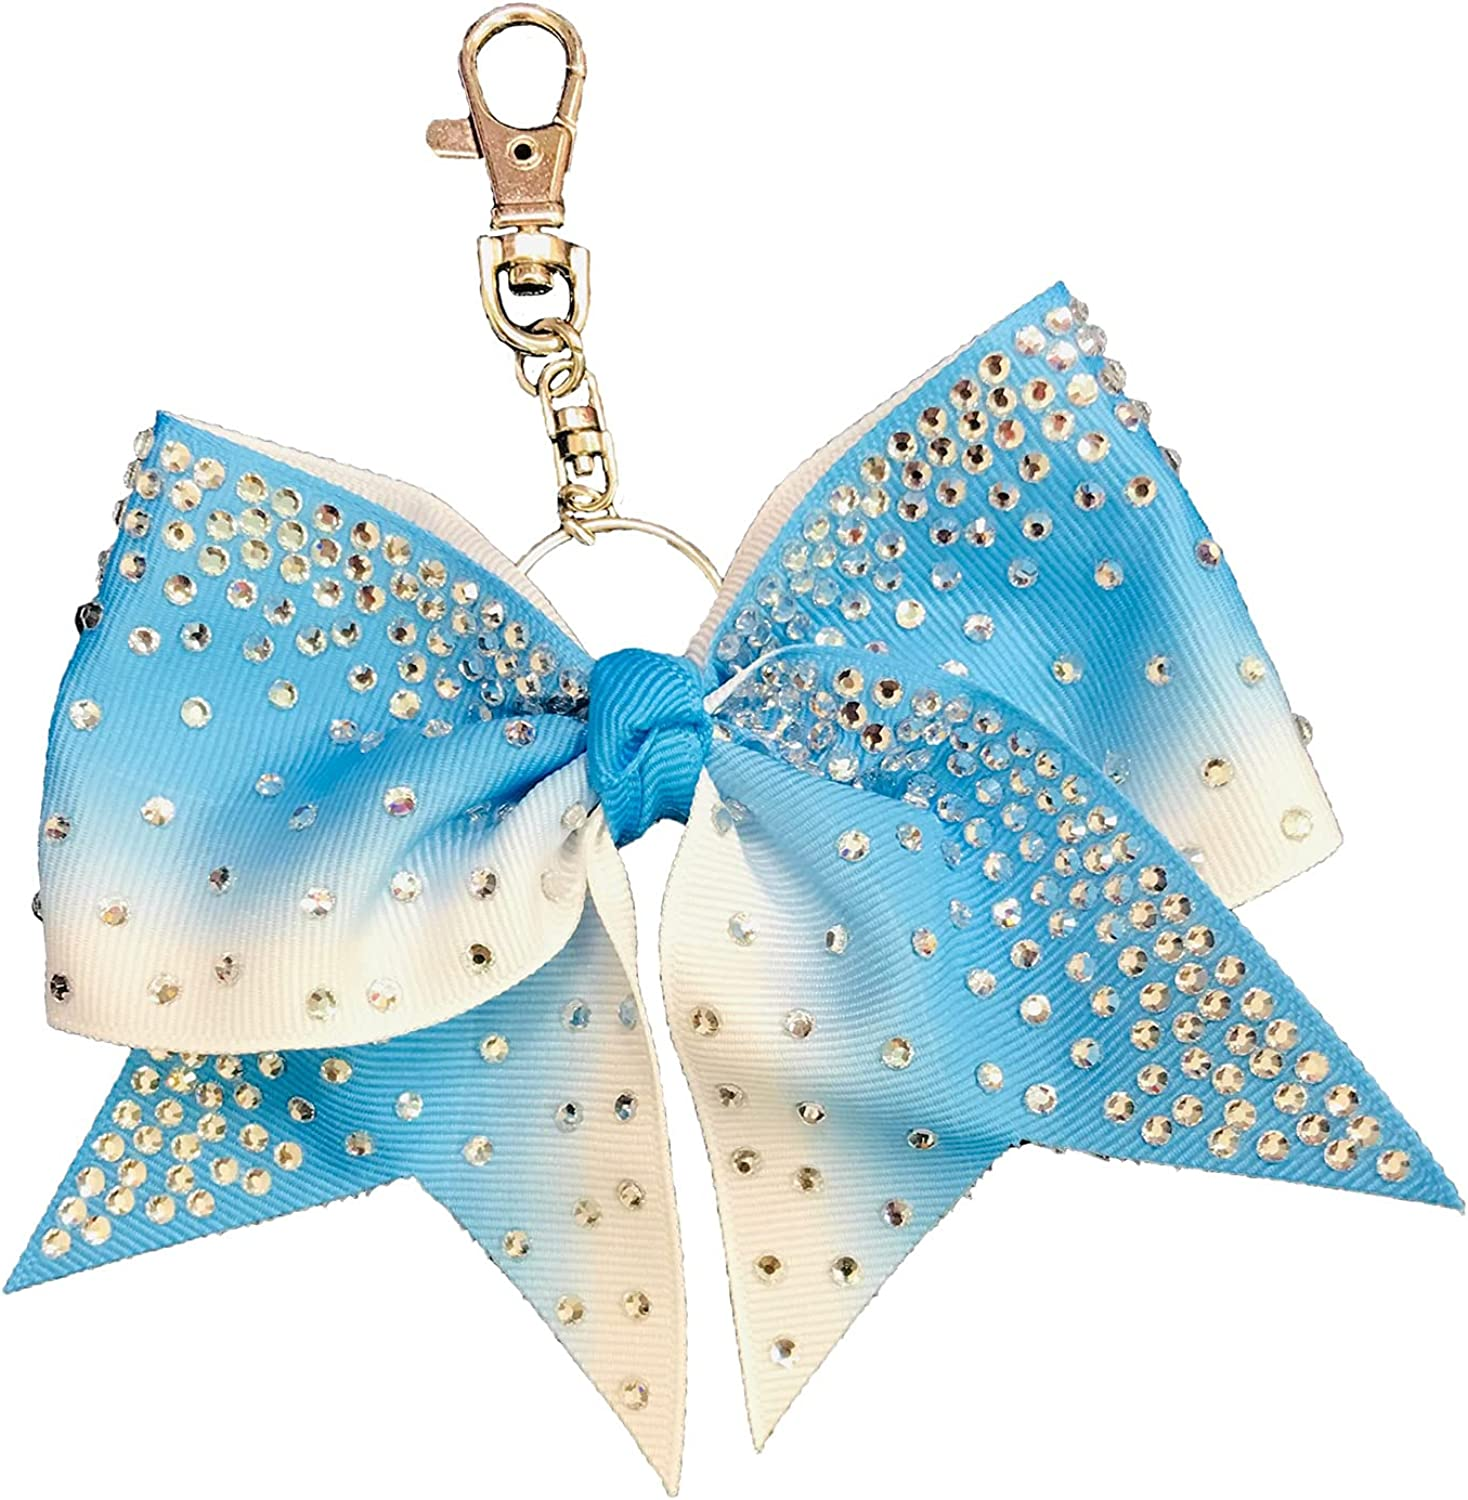 The Ultimate Bow - Brand new High material Rhinestone Ombre Cheerleading chain A Key